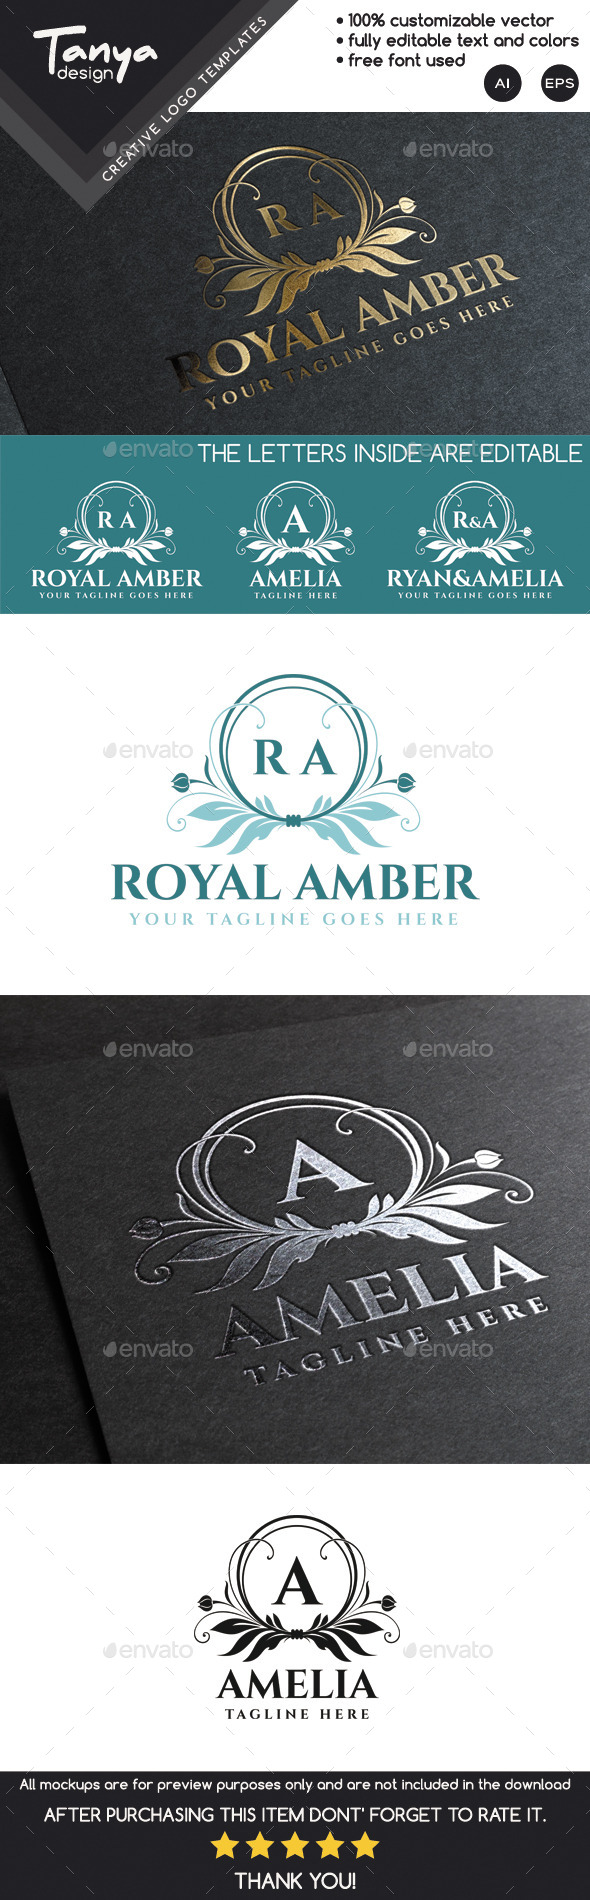 GraphicRiver Royal Amber Logo Template 9951239